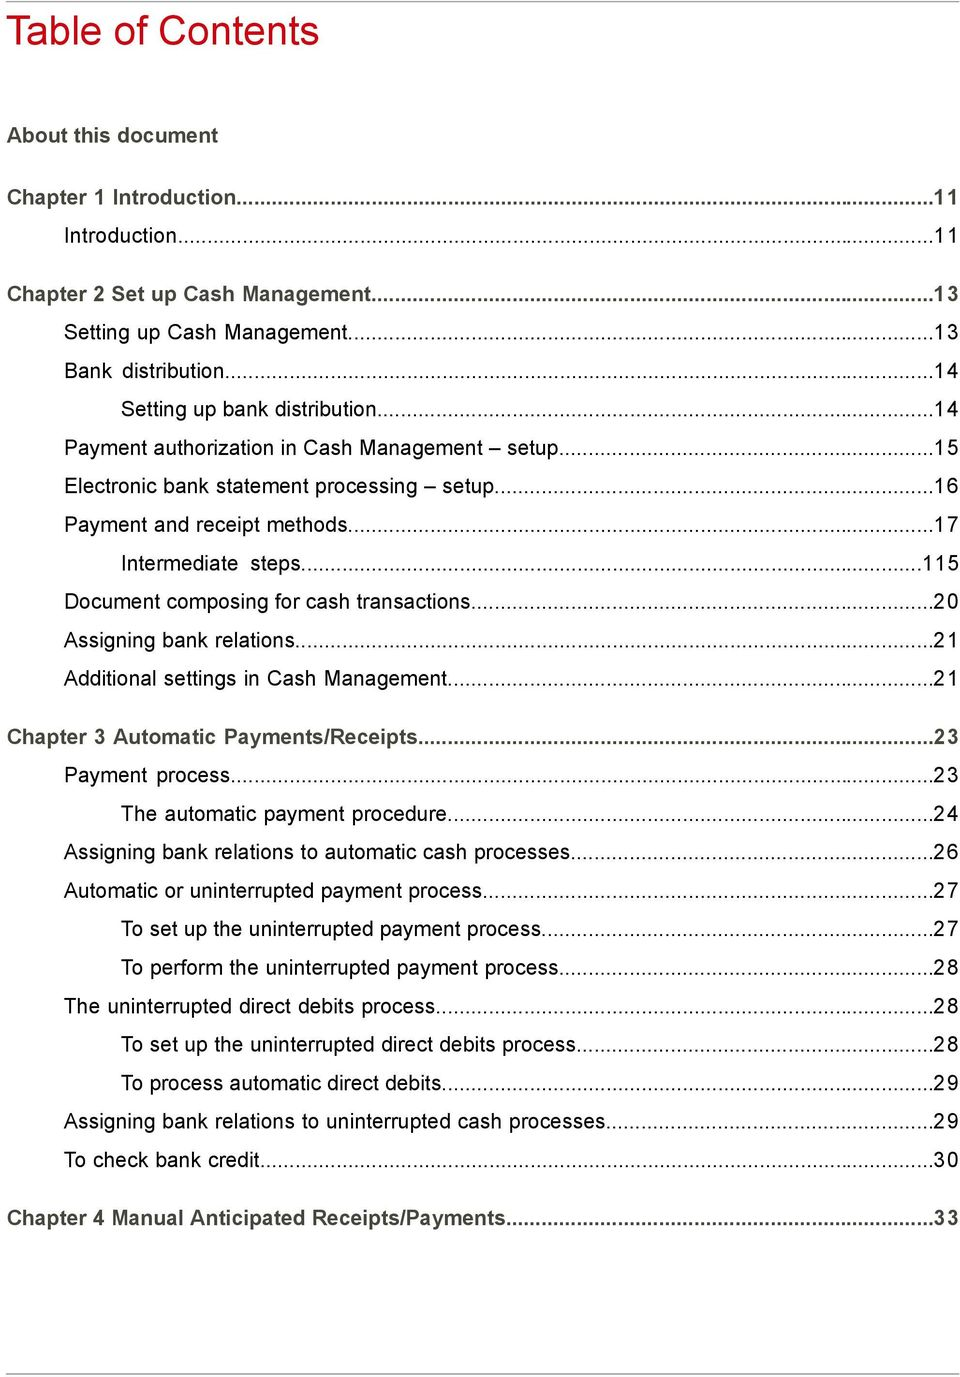 ..115 Document composing for cash transactions...20 Assigning bank relations...21 Additional settings in Cash Management...21 Chapter 3 Automatic Payments/Receipts...23 Payment process.